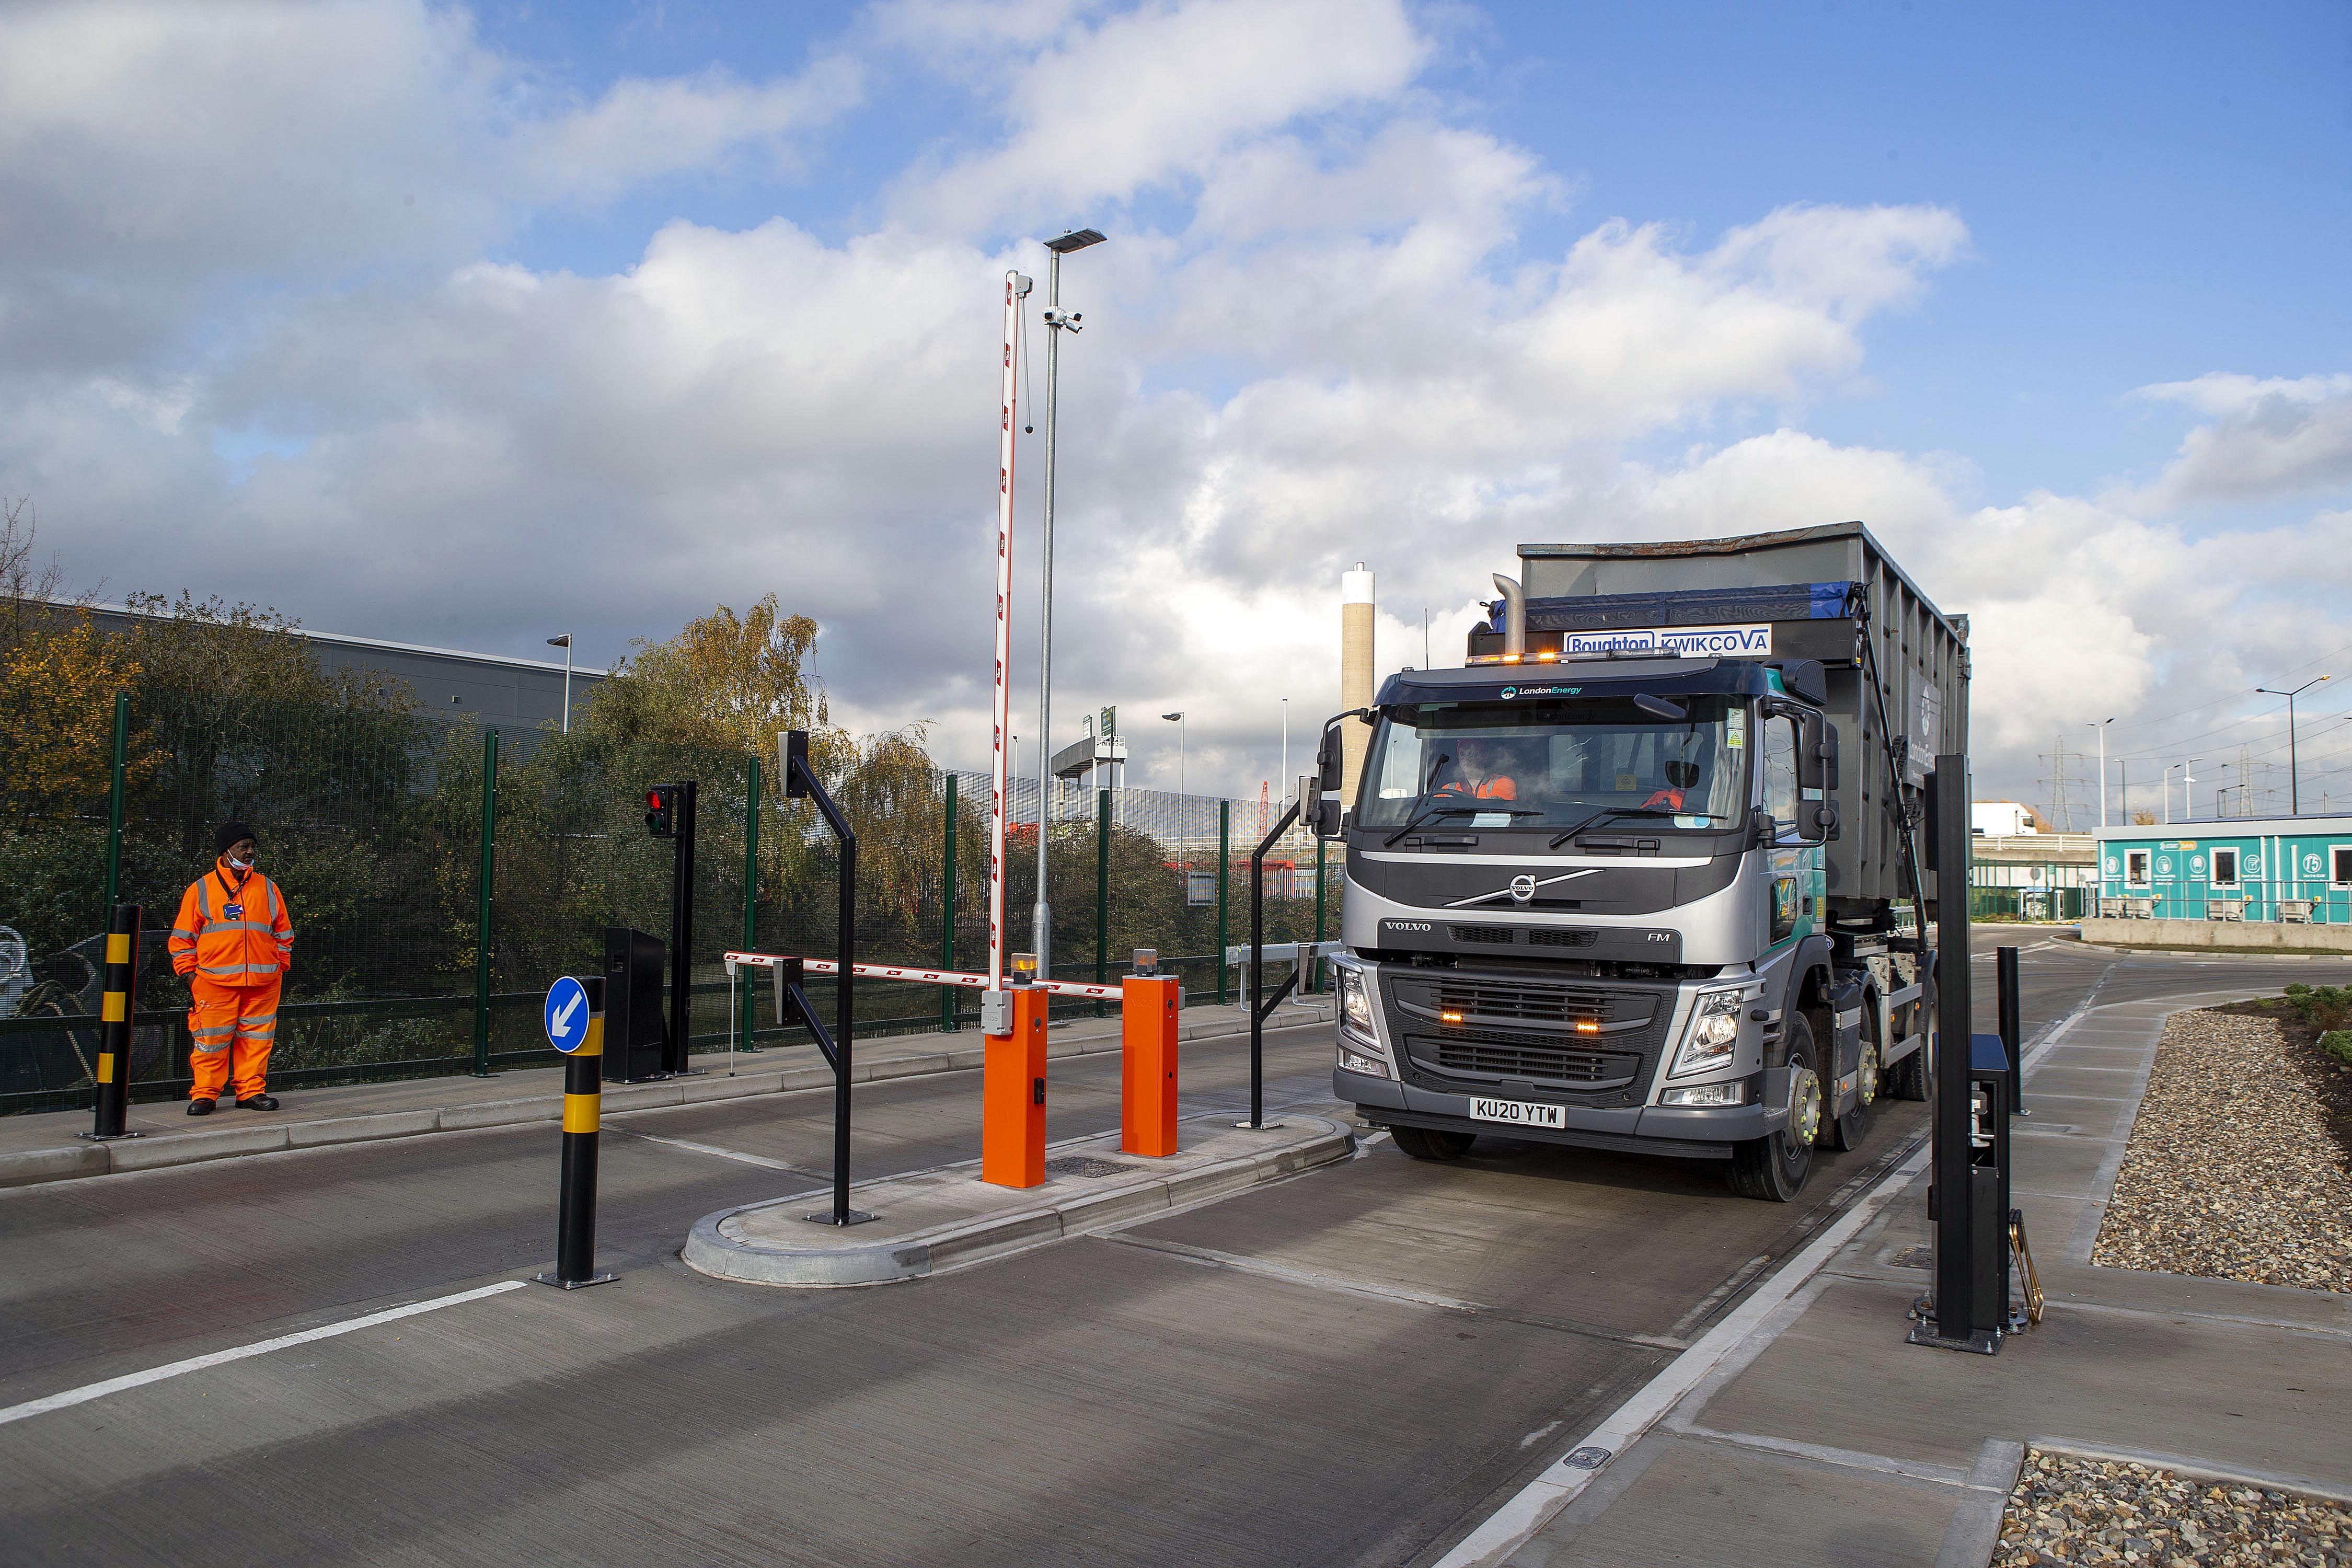 Entry and exit point for LondonEnergy vehicles into and out of the new Transport Yard